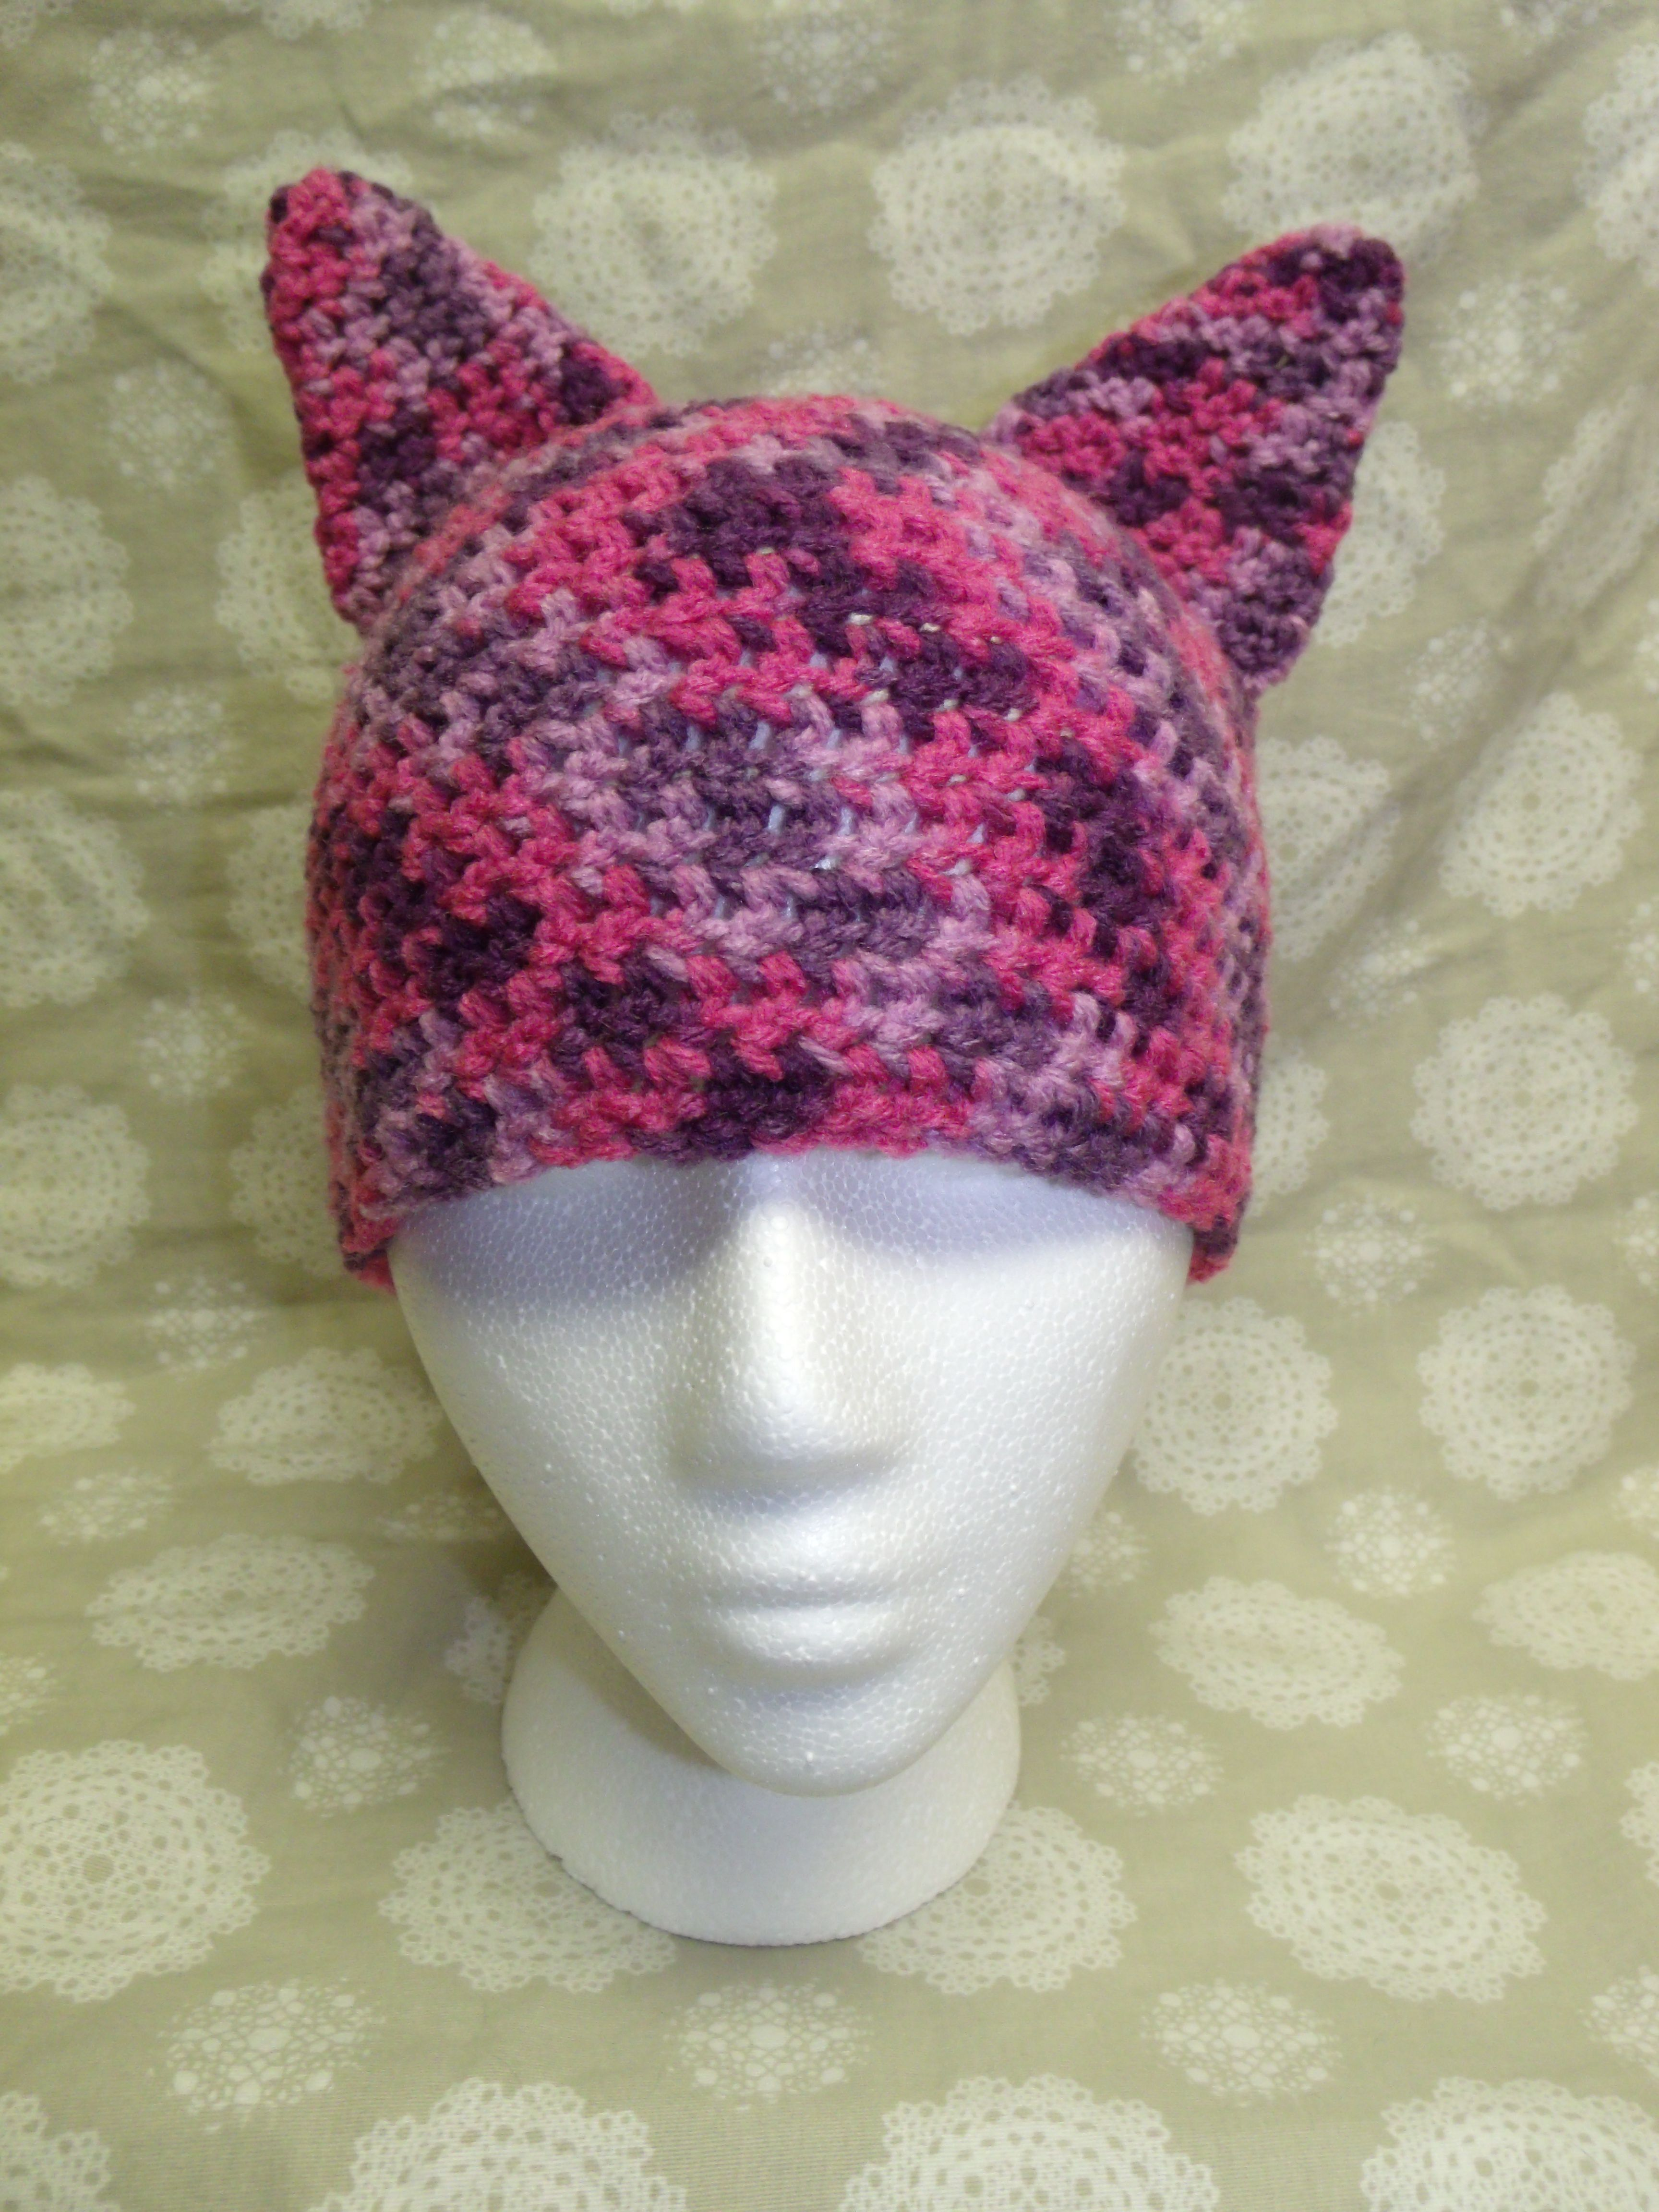 Crochet Cat Hat : Crochet Cat Hat Hats Pinterest